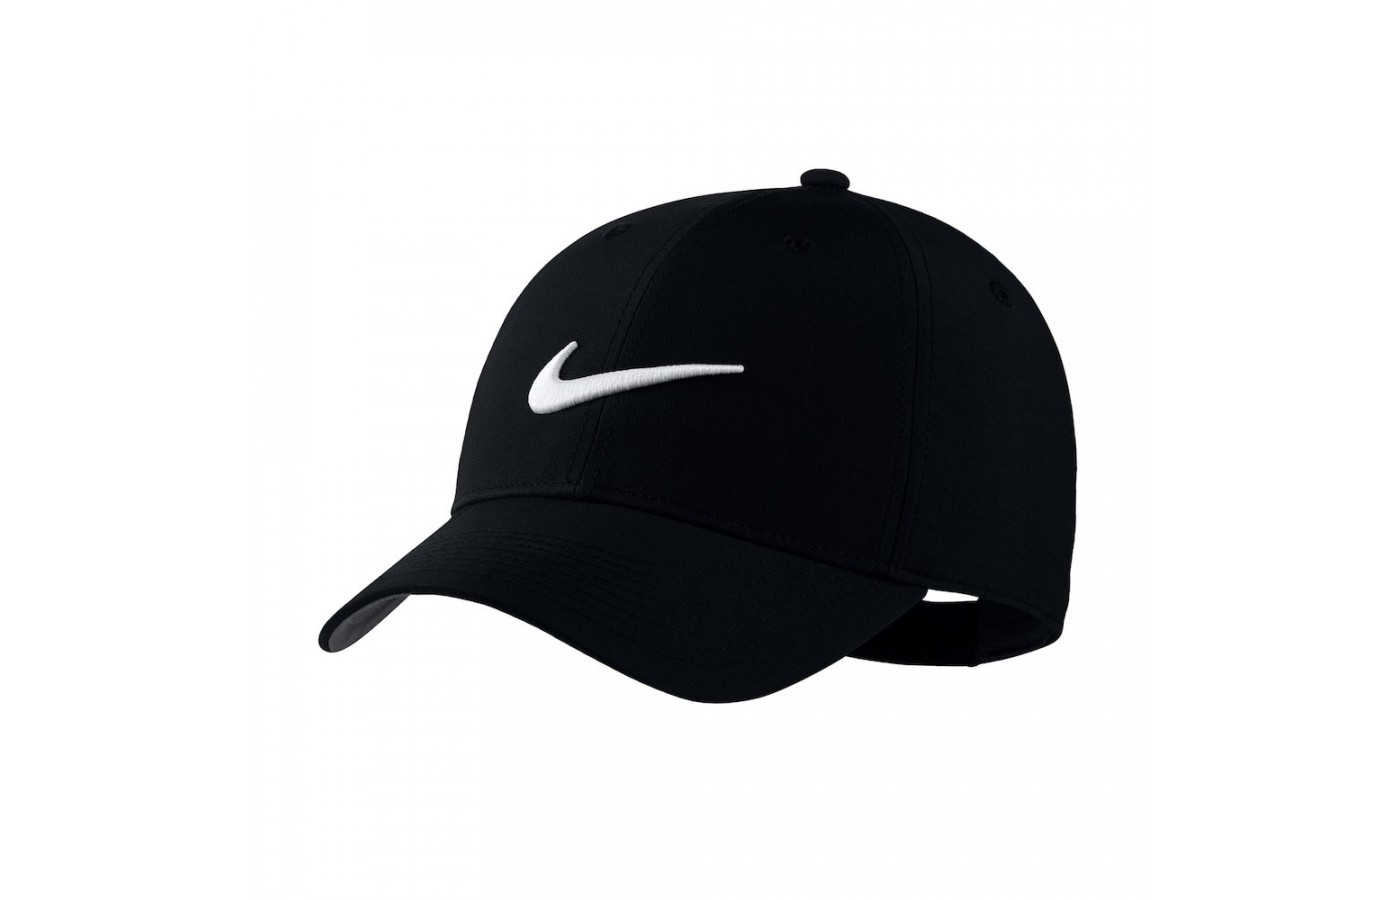 Nike Golf Dri-FIT black angle